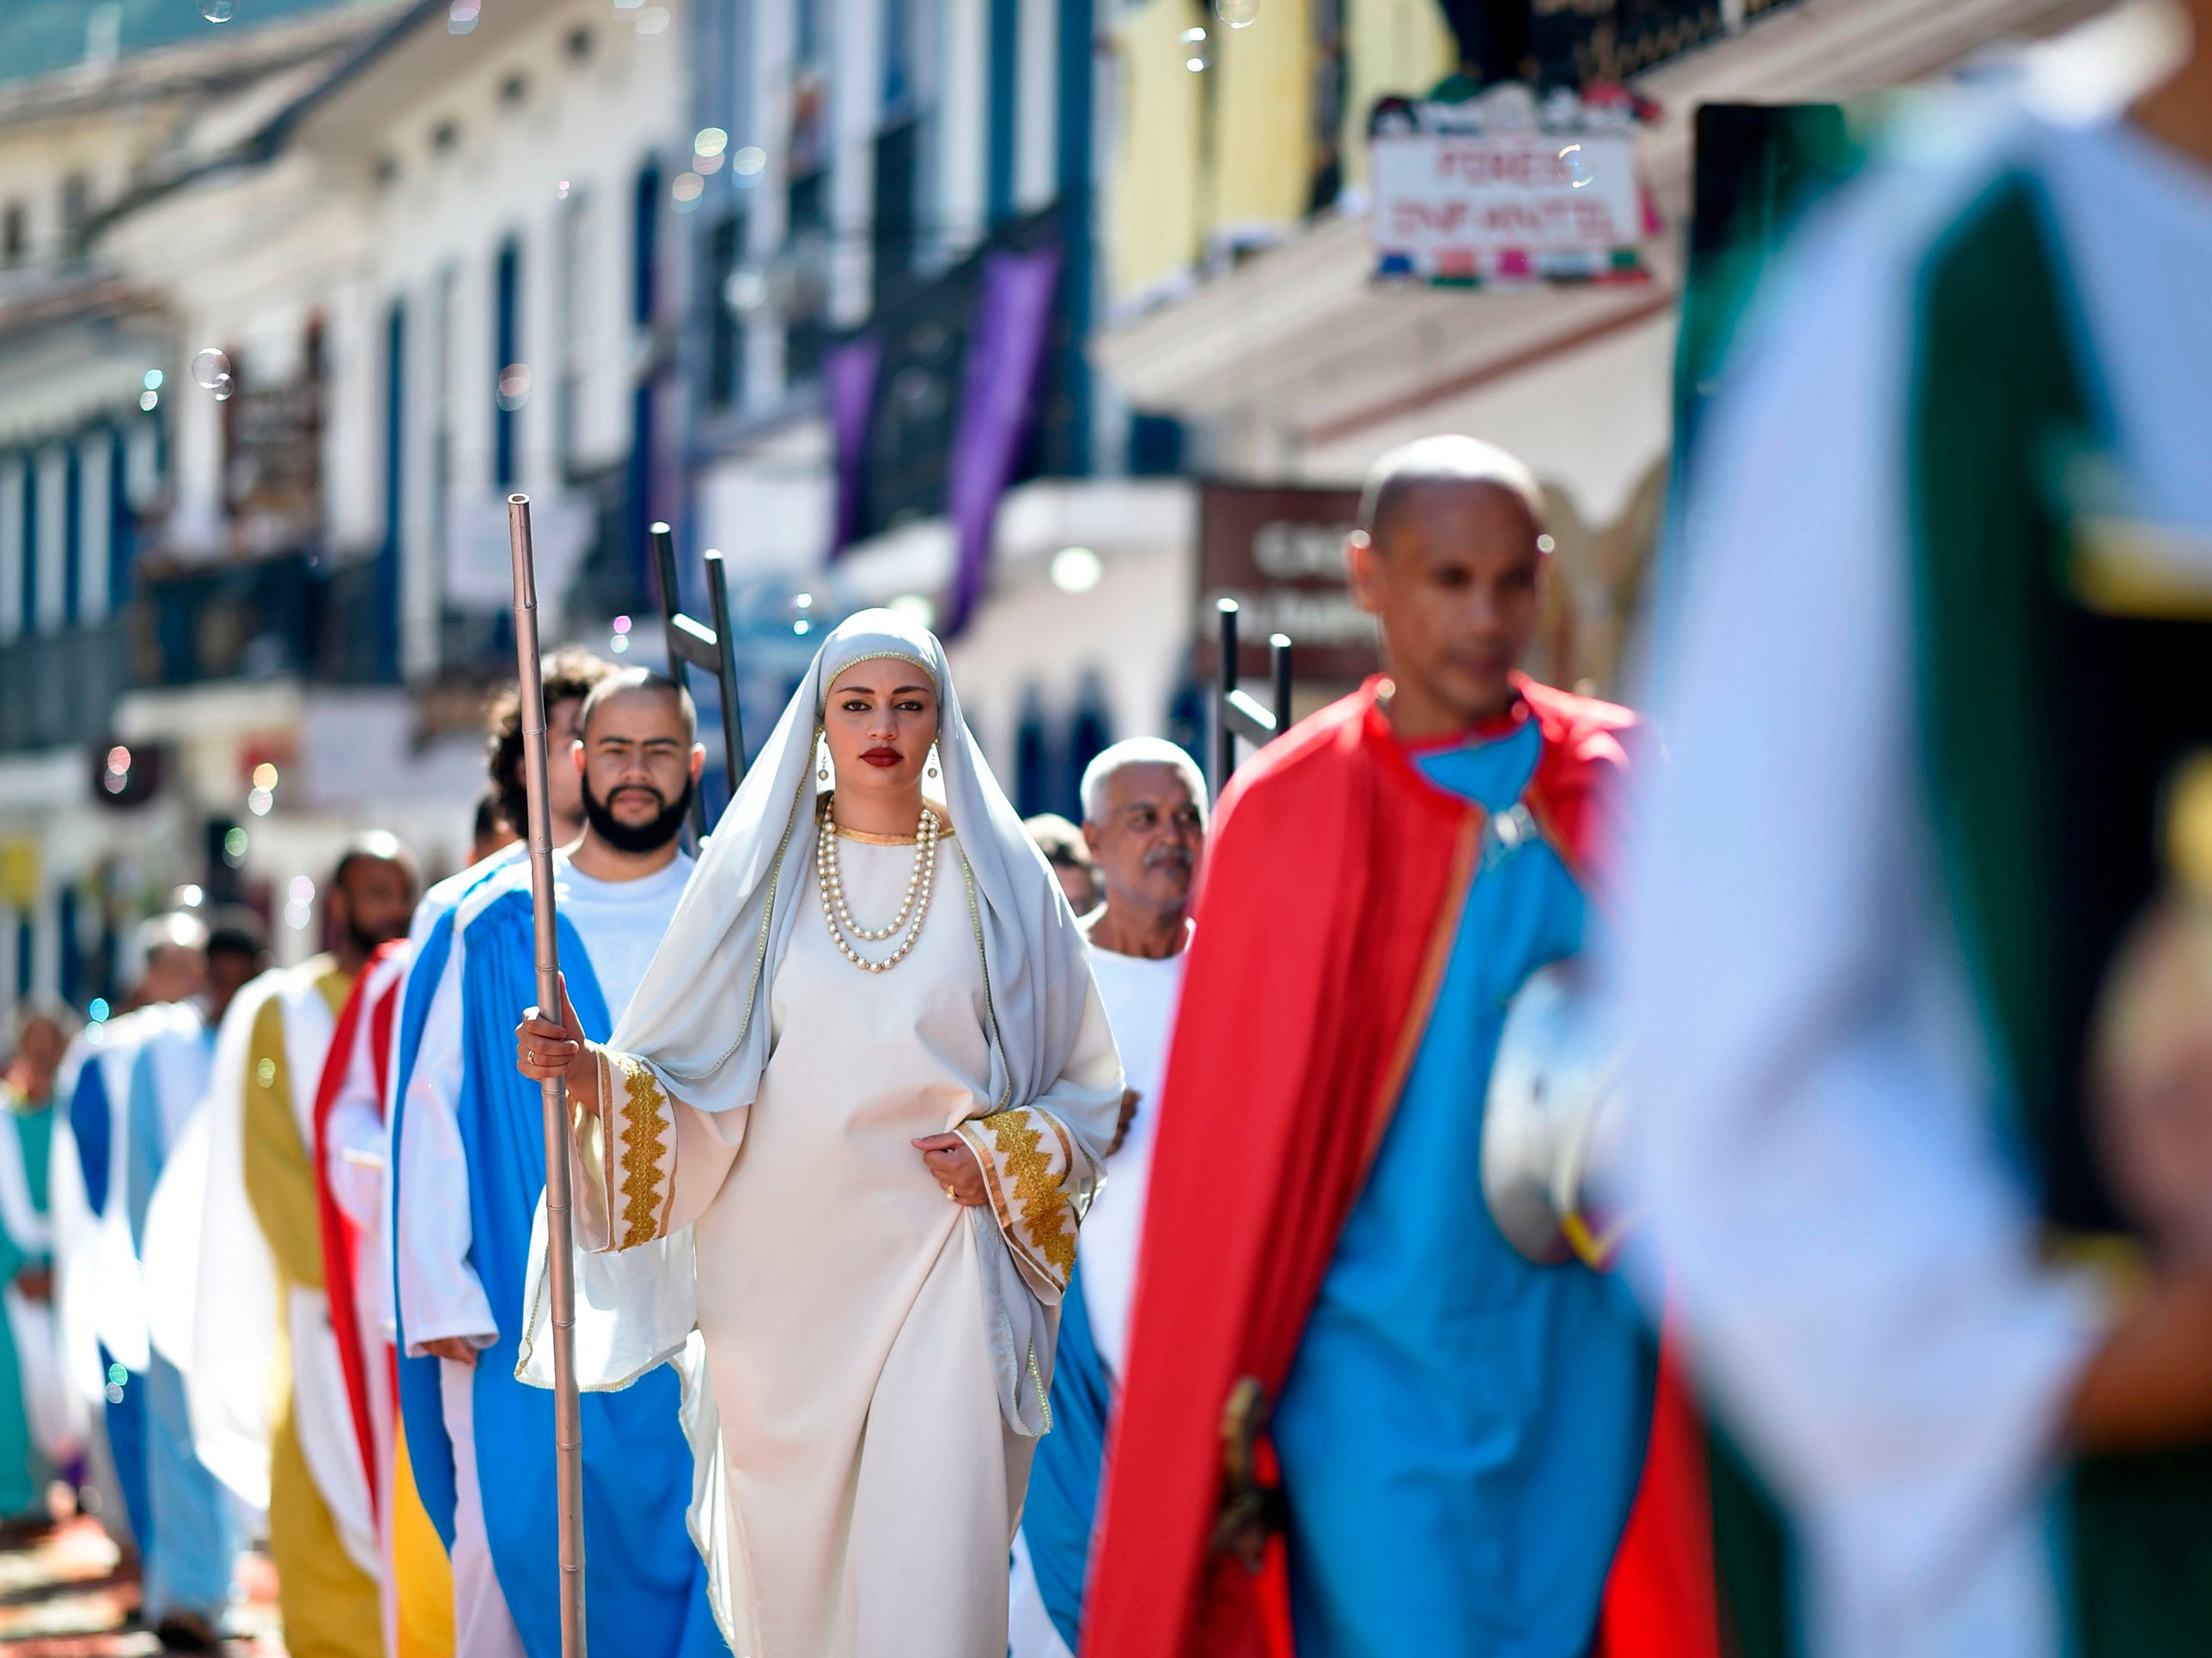 Catholics walk over a sawdust rug during an Easter procession representing the resurrection of Christ, in the Brazilian city of Ouro Preto, Minas Gerais State, on April 21, 2019. The streets are decorated by locals and tourists who use about 60 tons of colored sawdust.